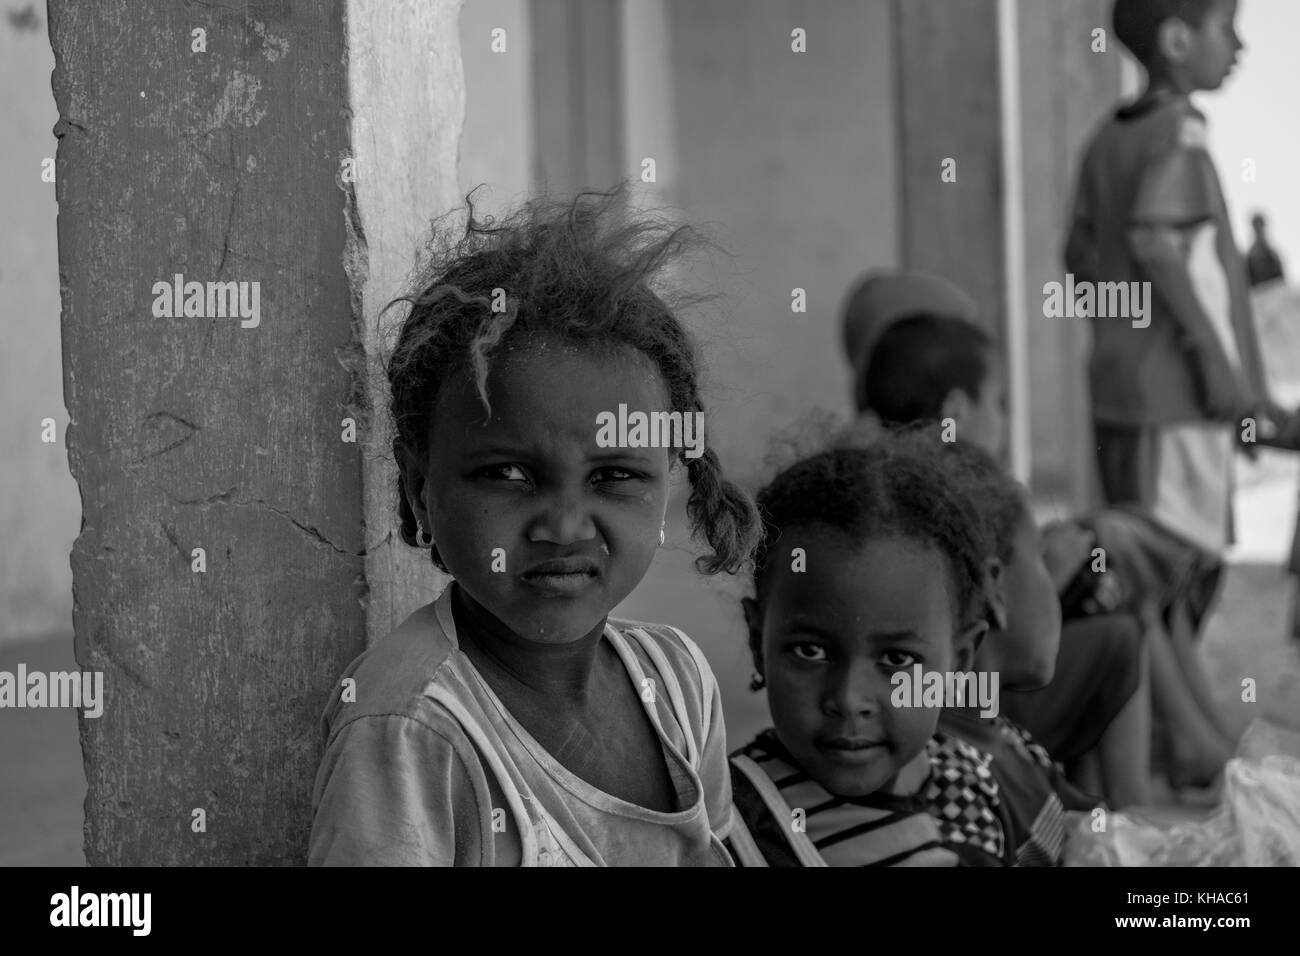 Two African children looking towards to camera. Taken in Mali. Stock Photo